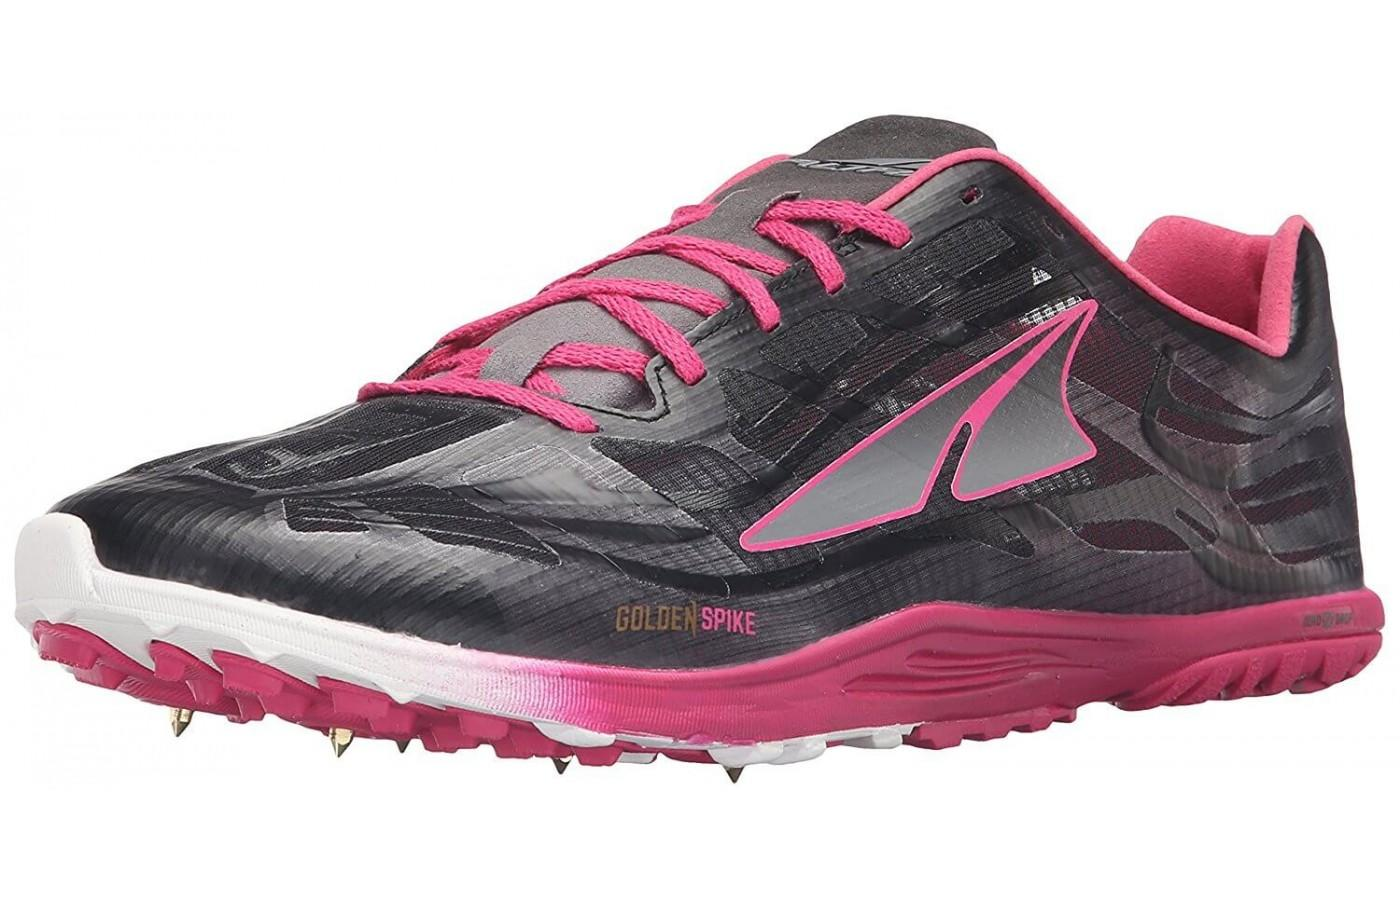 the Altra Golden Spike is a zero drop minimalist shoe with removable spikes